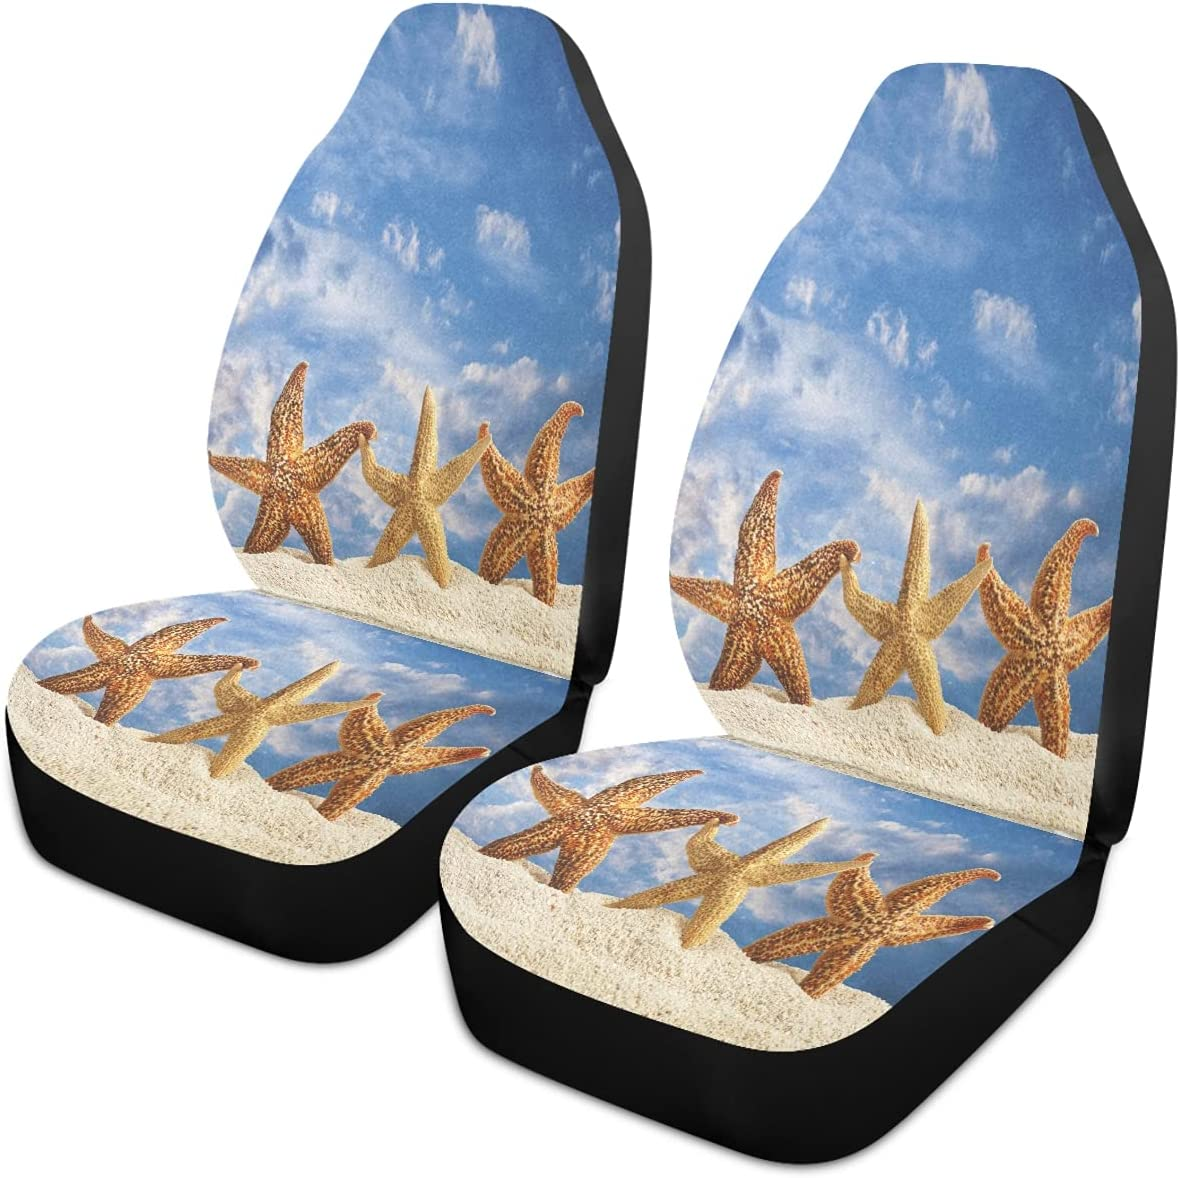 Oarencol Summer New product Starfish Beach Blue Universa Car Covers Sky Seat Bombing new work